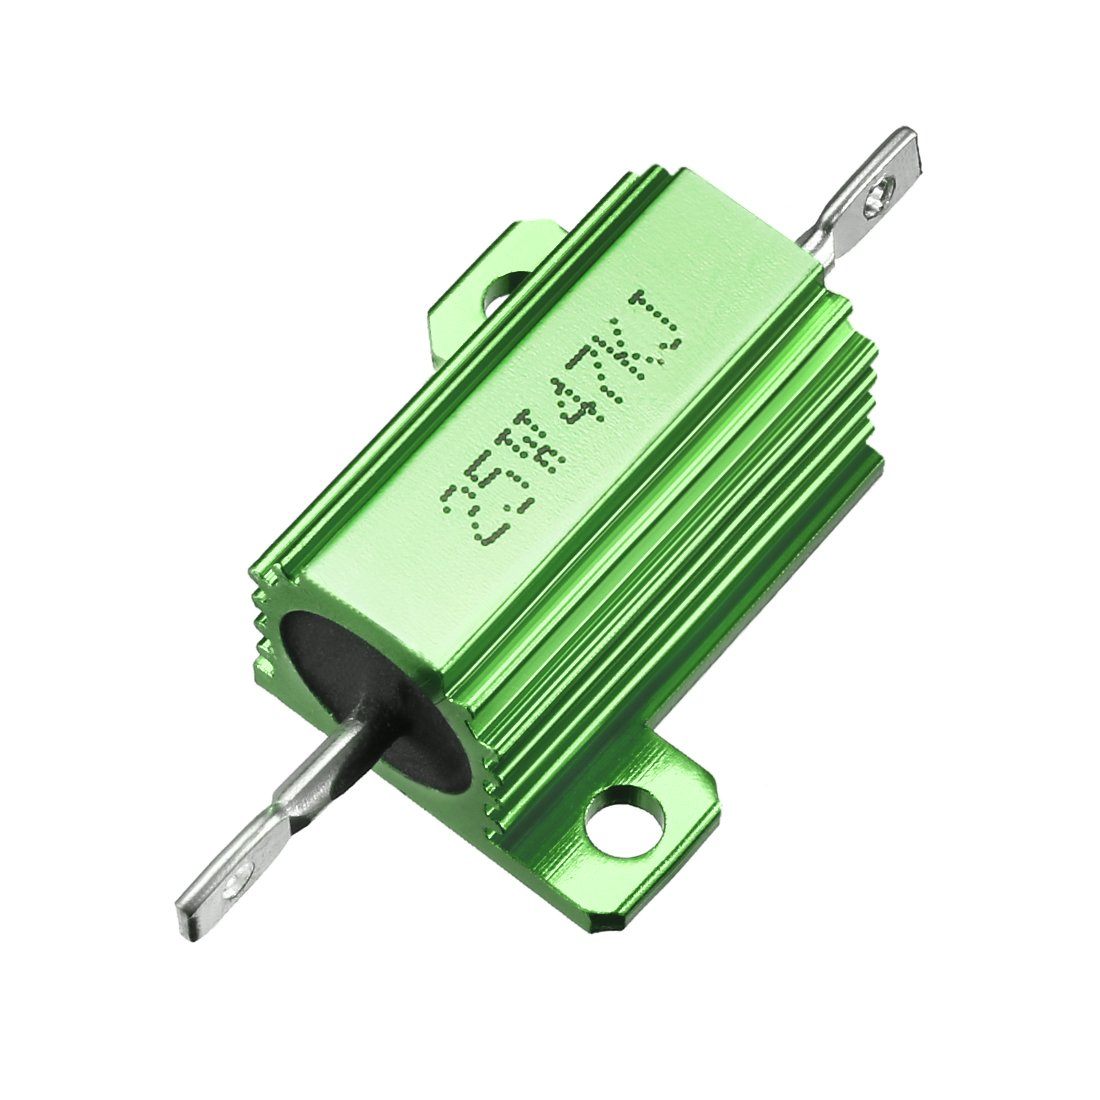 sourcing map 25W 1k Ohm 5/% Aluminum Housing Resistor Screw Tap Chassis Mounted Aluminum Case Wirewound Resistor Load Resistors Green 1 pcs